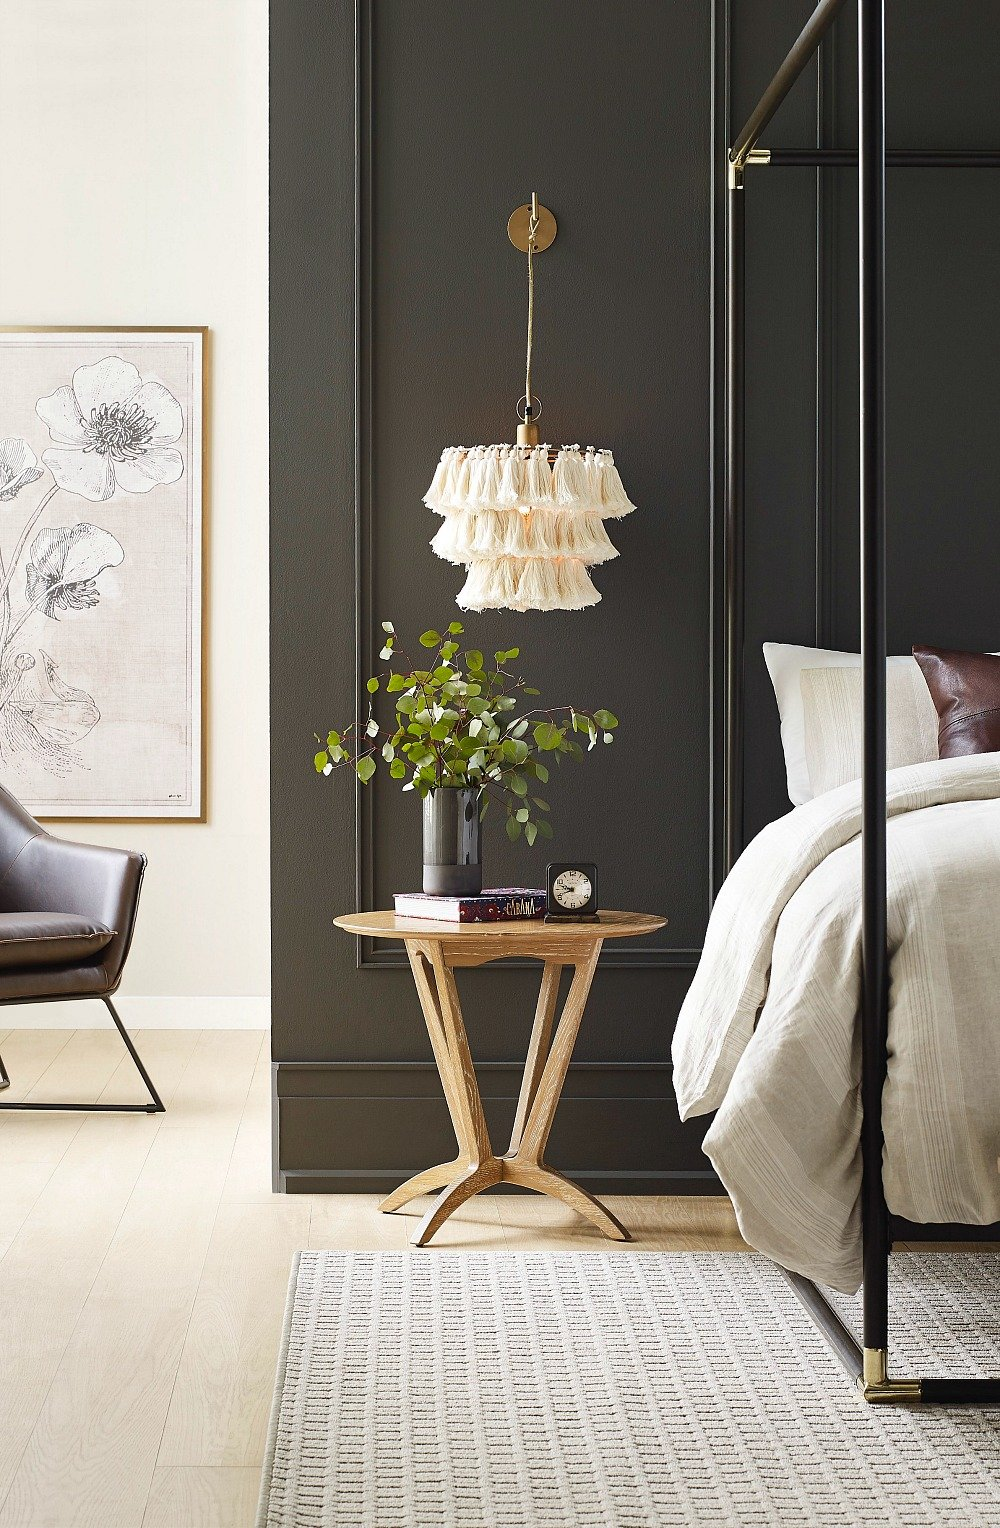 Sherwin Williams 2021 Color of the Year Urbane Bronze